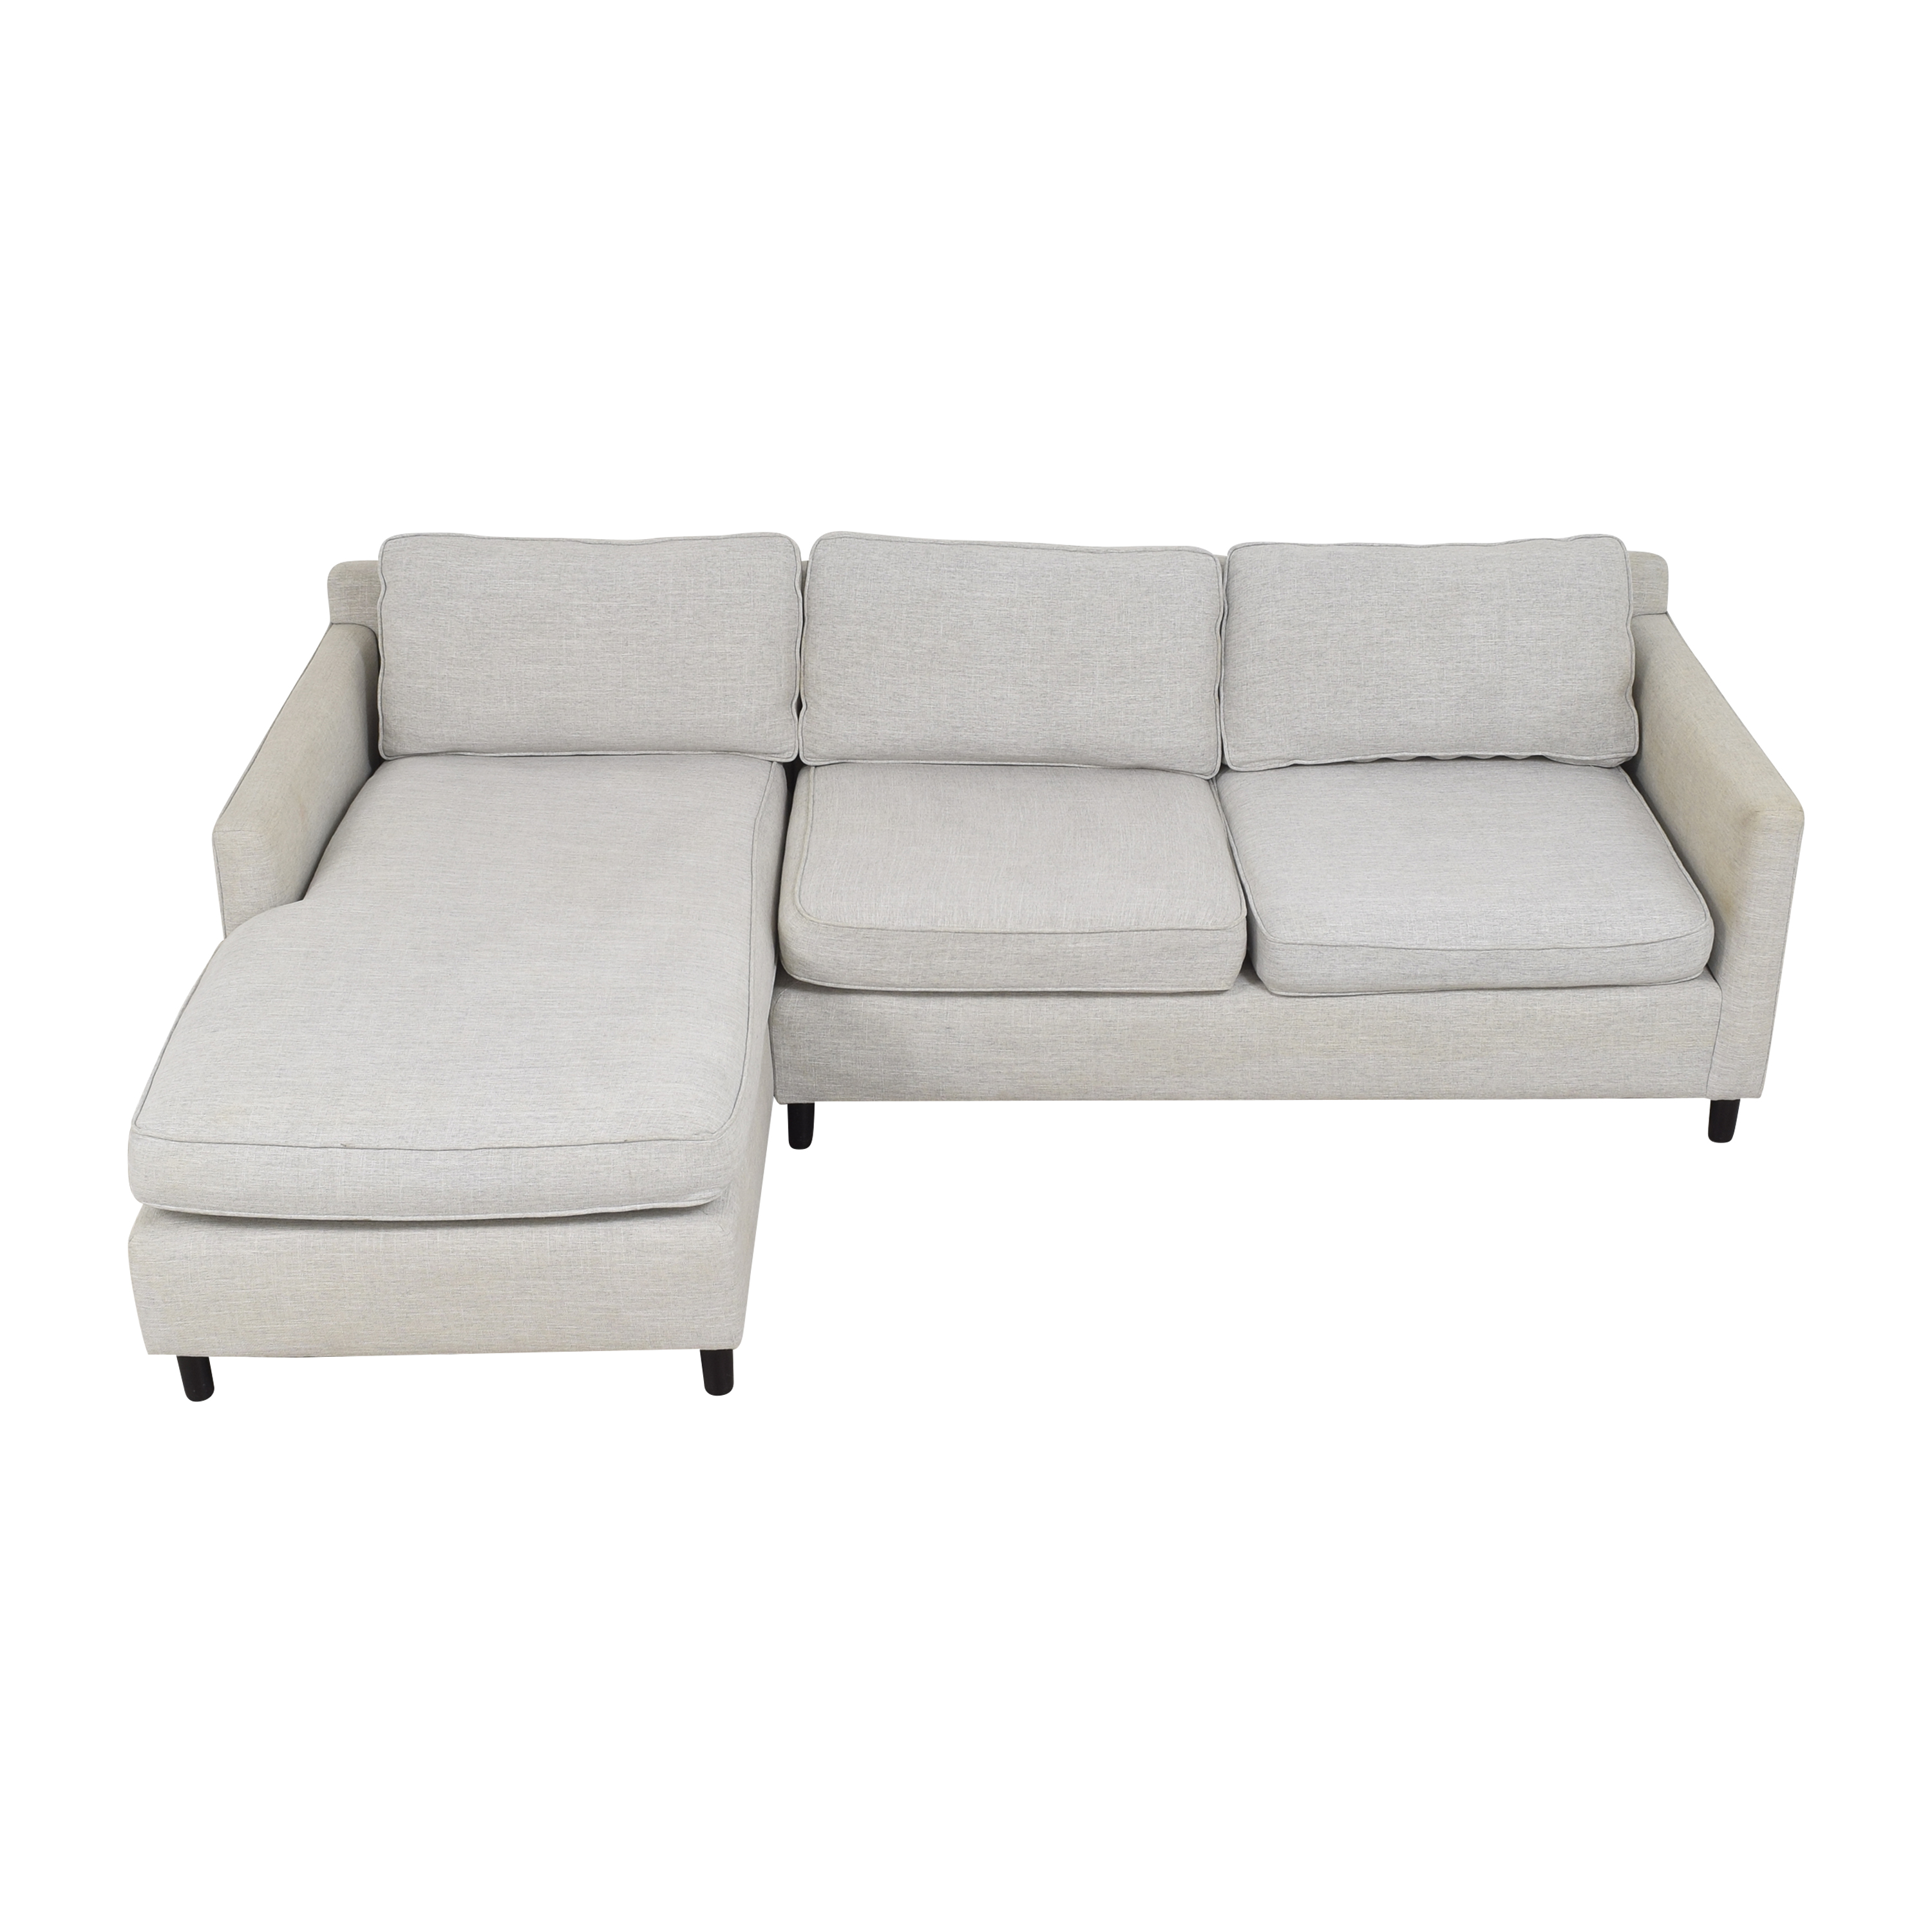 Mitchell Gold + Bob Williams Mitchell Gold + Bob Williams Sectional Sofa with Chaise nyc